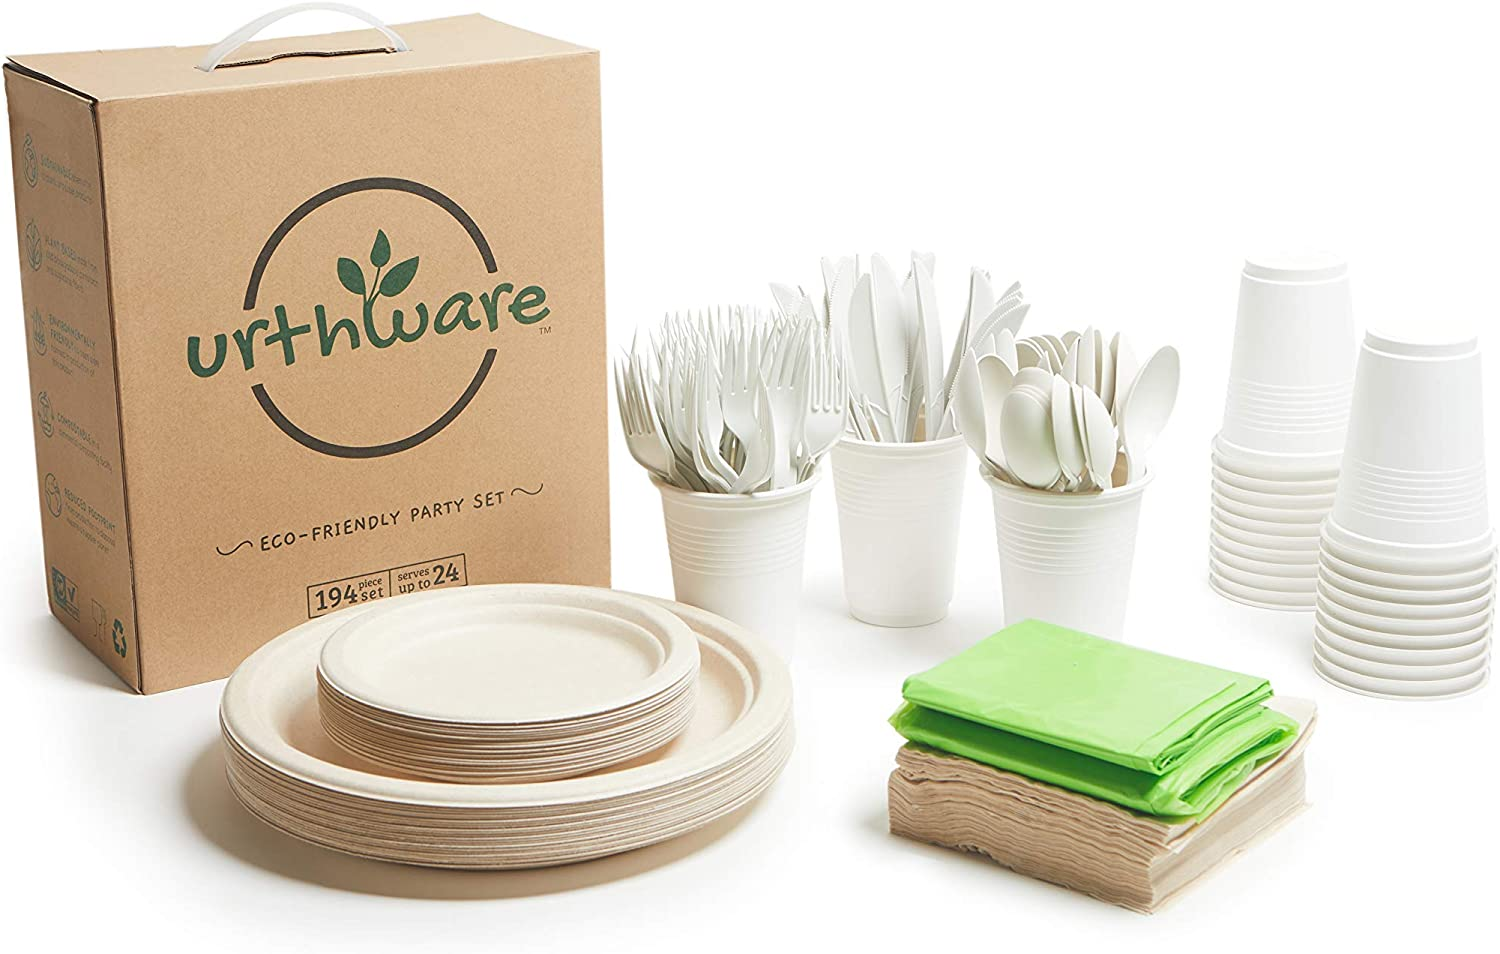 Urthware Compostable Plates Set. 194PC Eco Friendly Plates Disposable Dessert, Biodegradable Cups, Compostable Cutlery with Spoons, Party Napkins. Bagasse Heavy Duty Paper Plates 10 Inch and